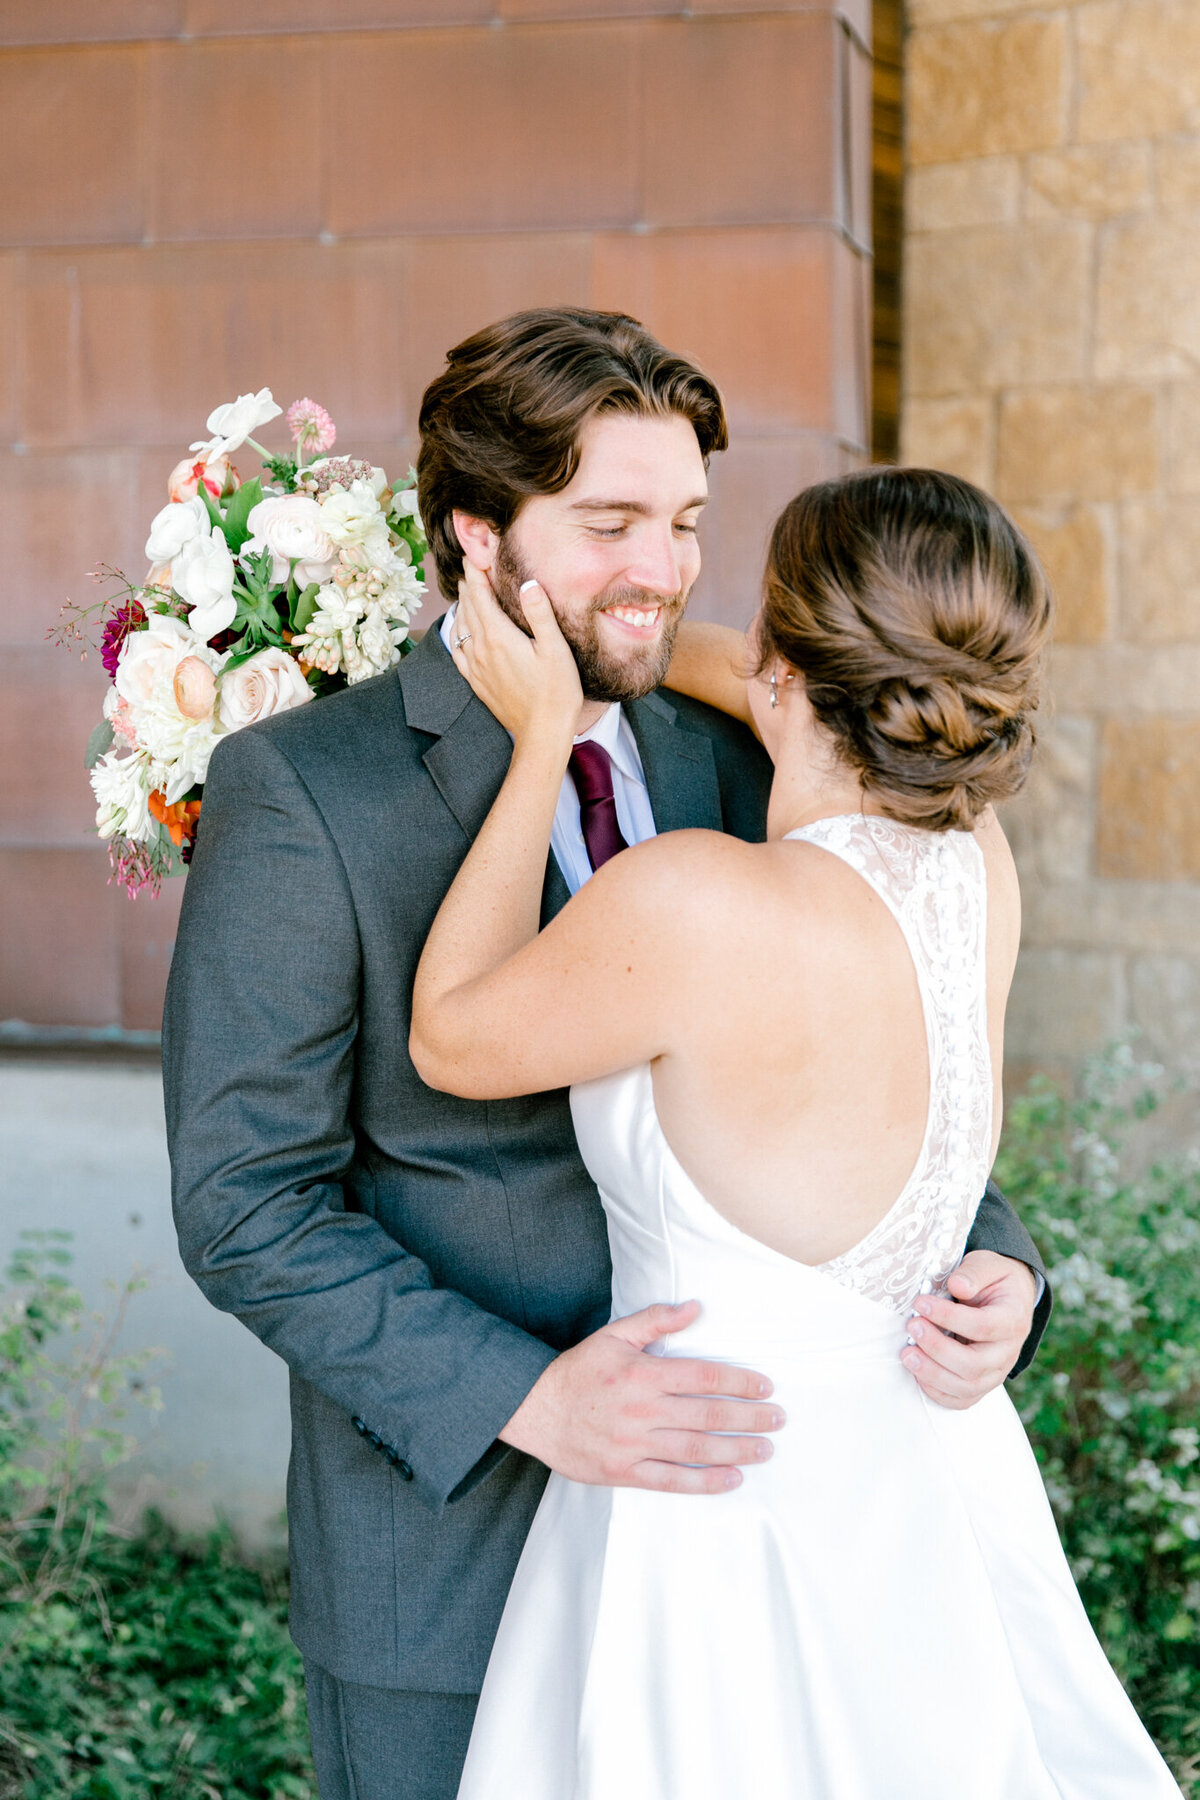 Kaylee & Michael's Wedding at Watermark Community Church | Dallas Wedding Photographer | Sami Kathryn Photography-51